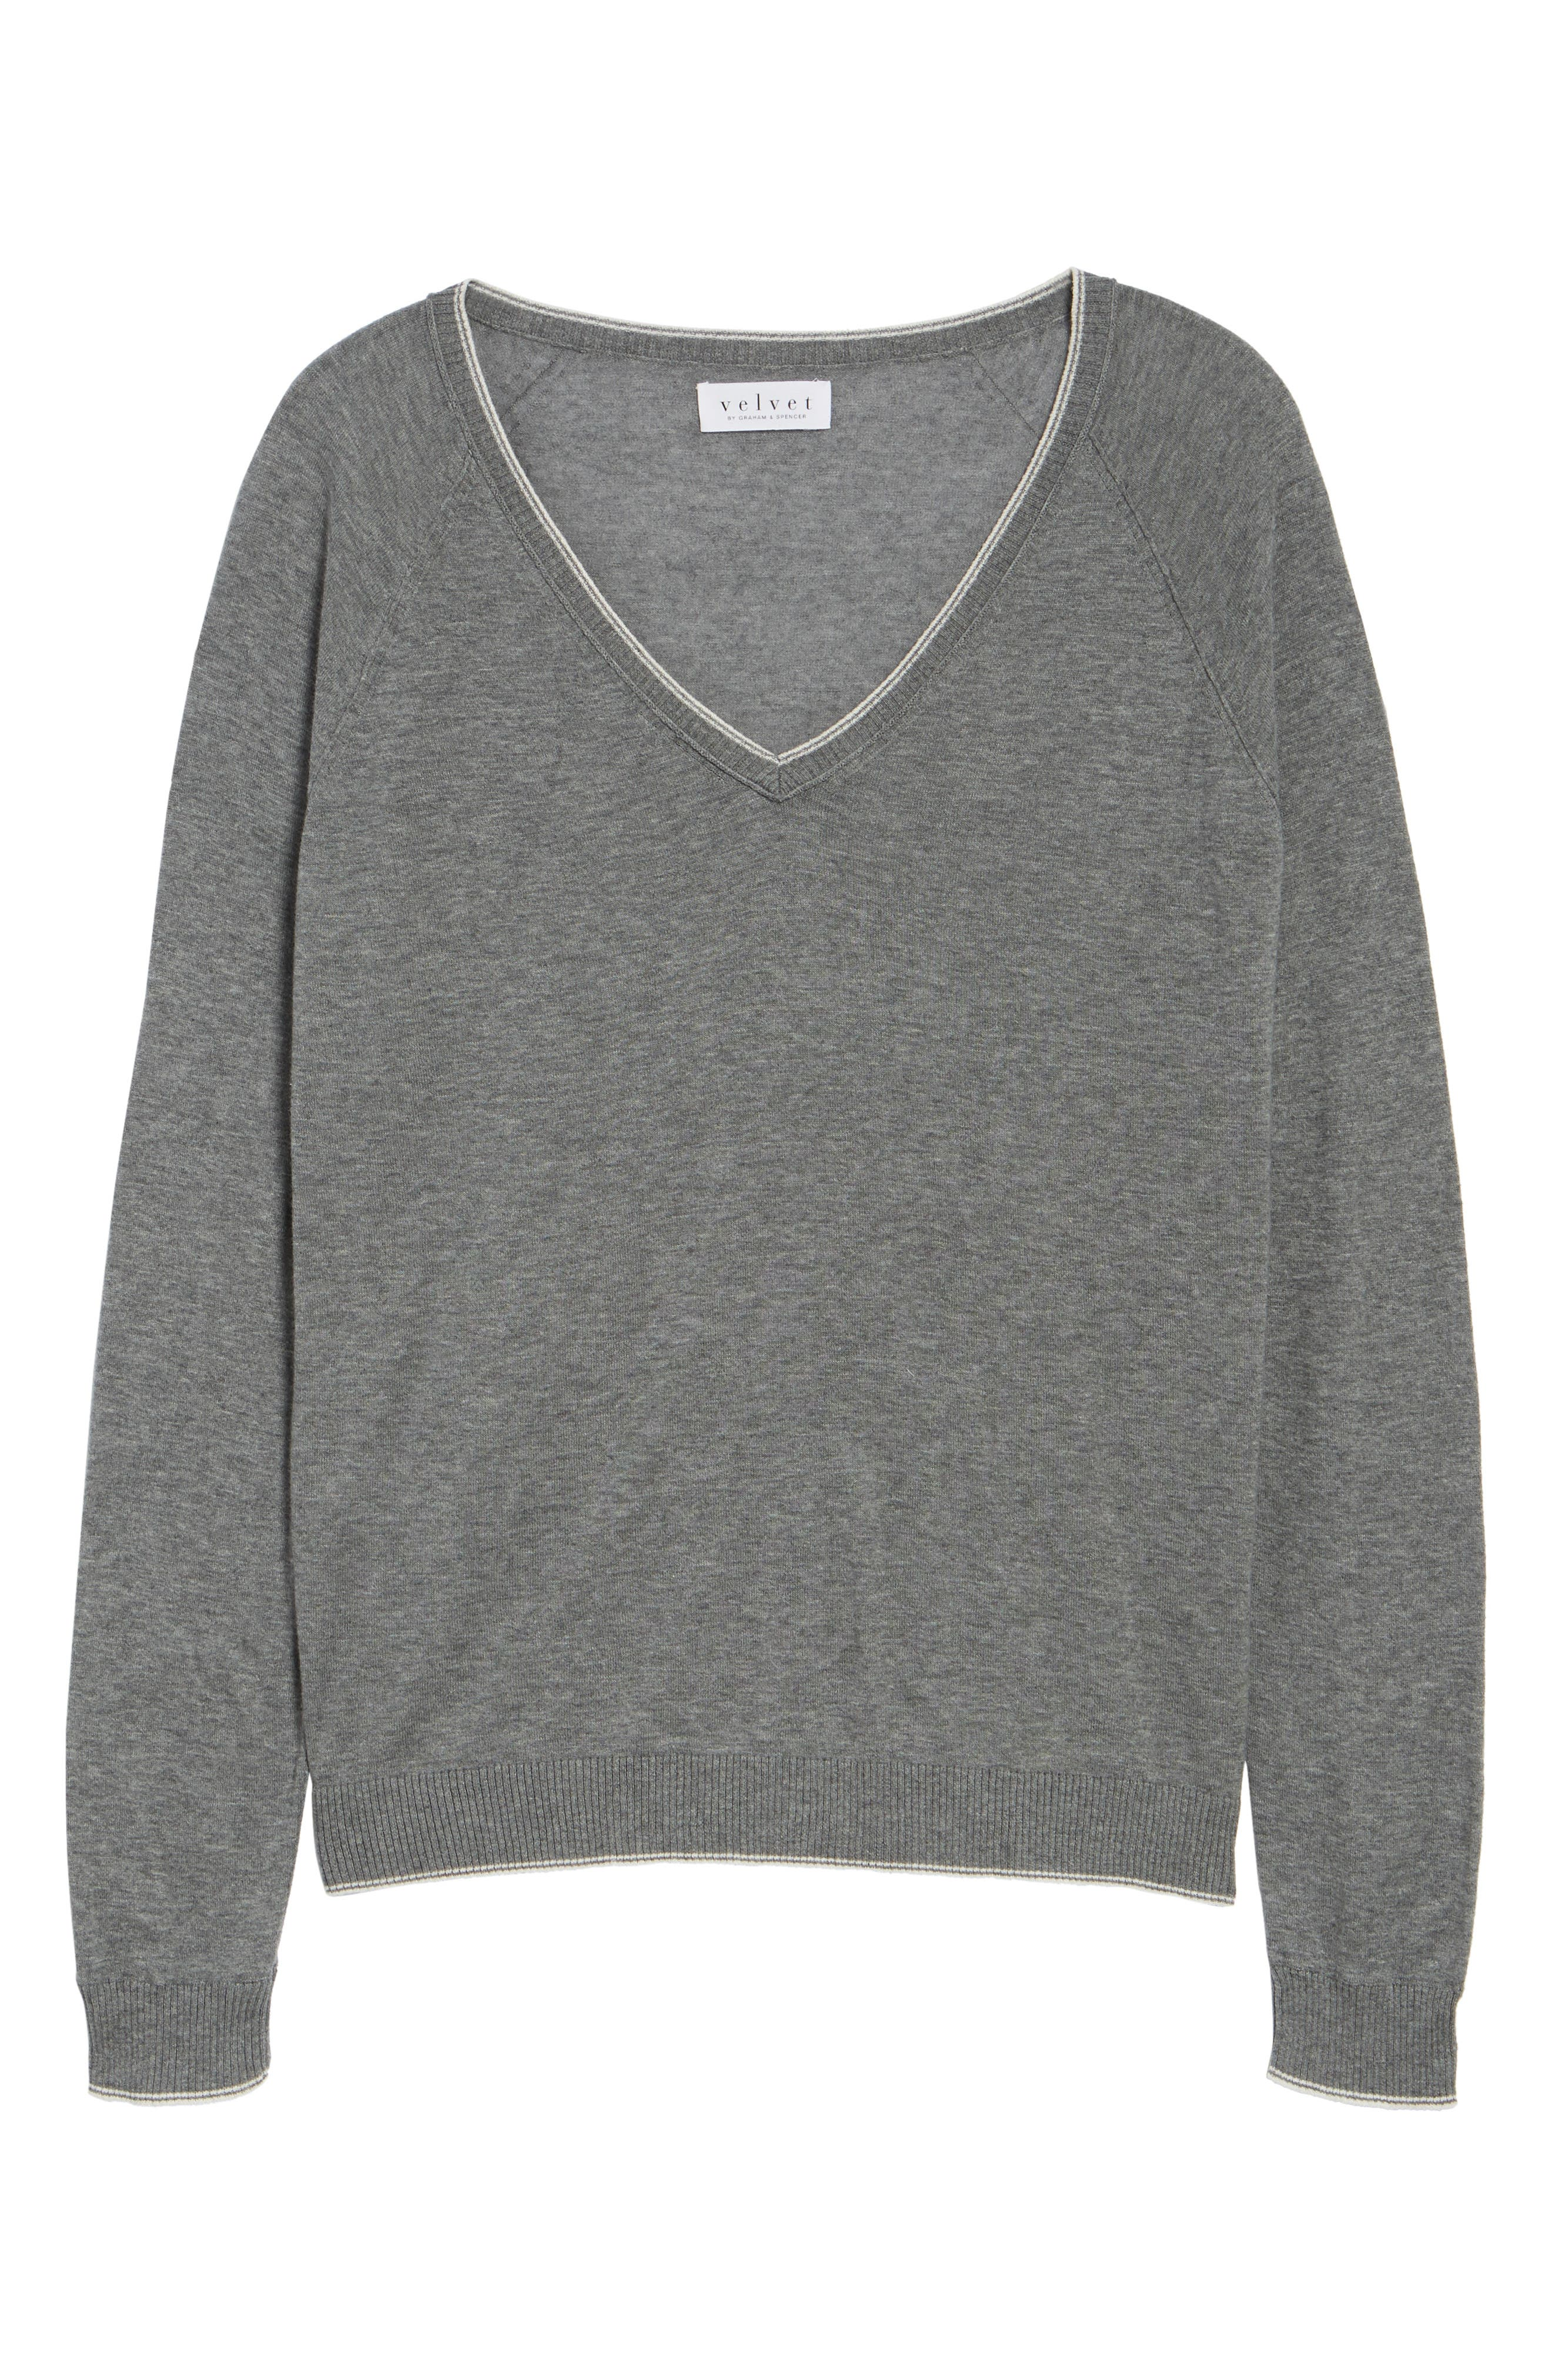 Lux Cotton Sweater,                             Alternate thumbnail 7, color,                             Heather Grey